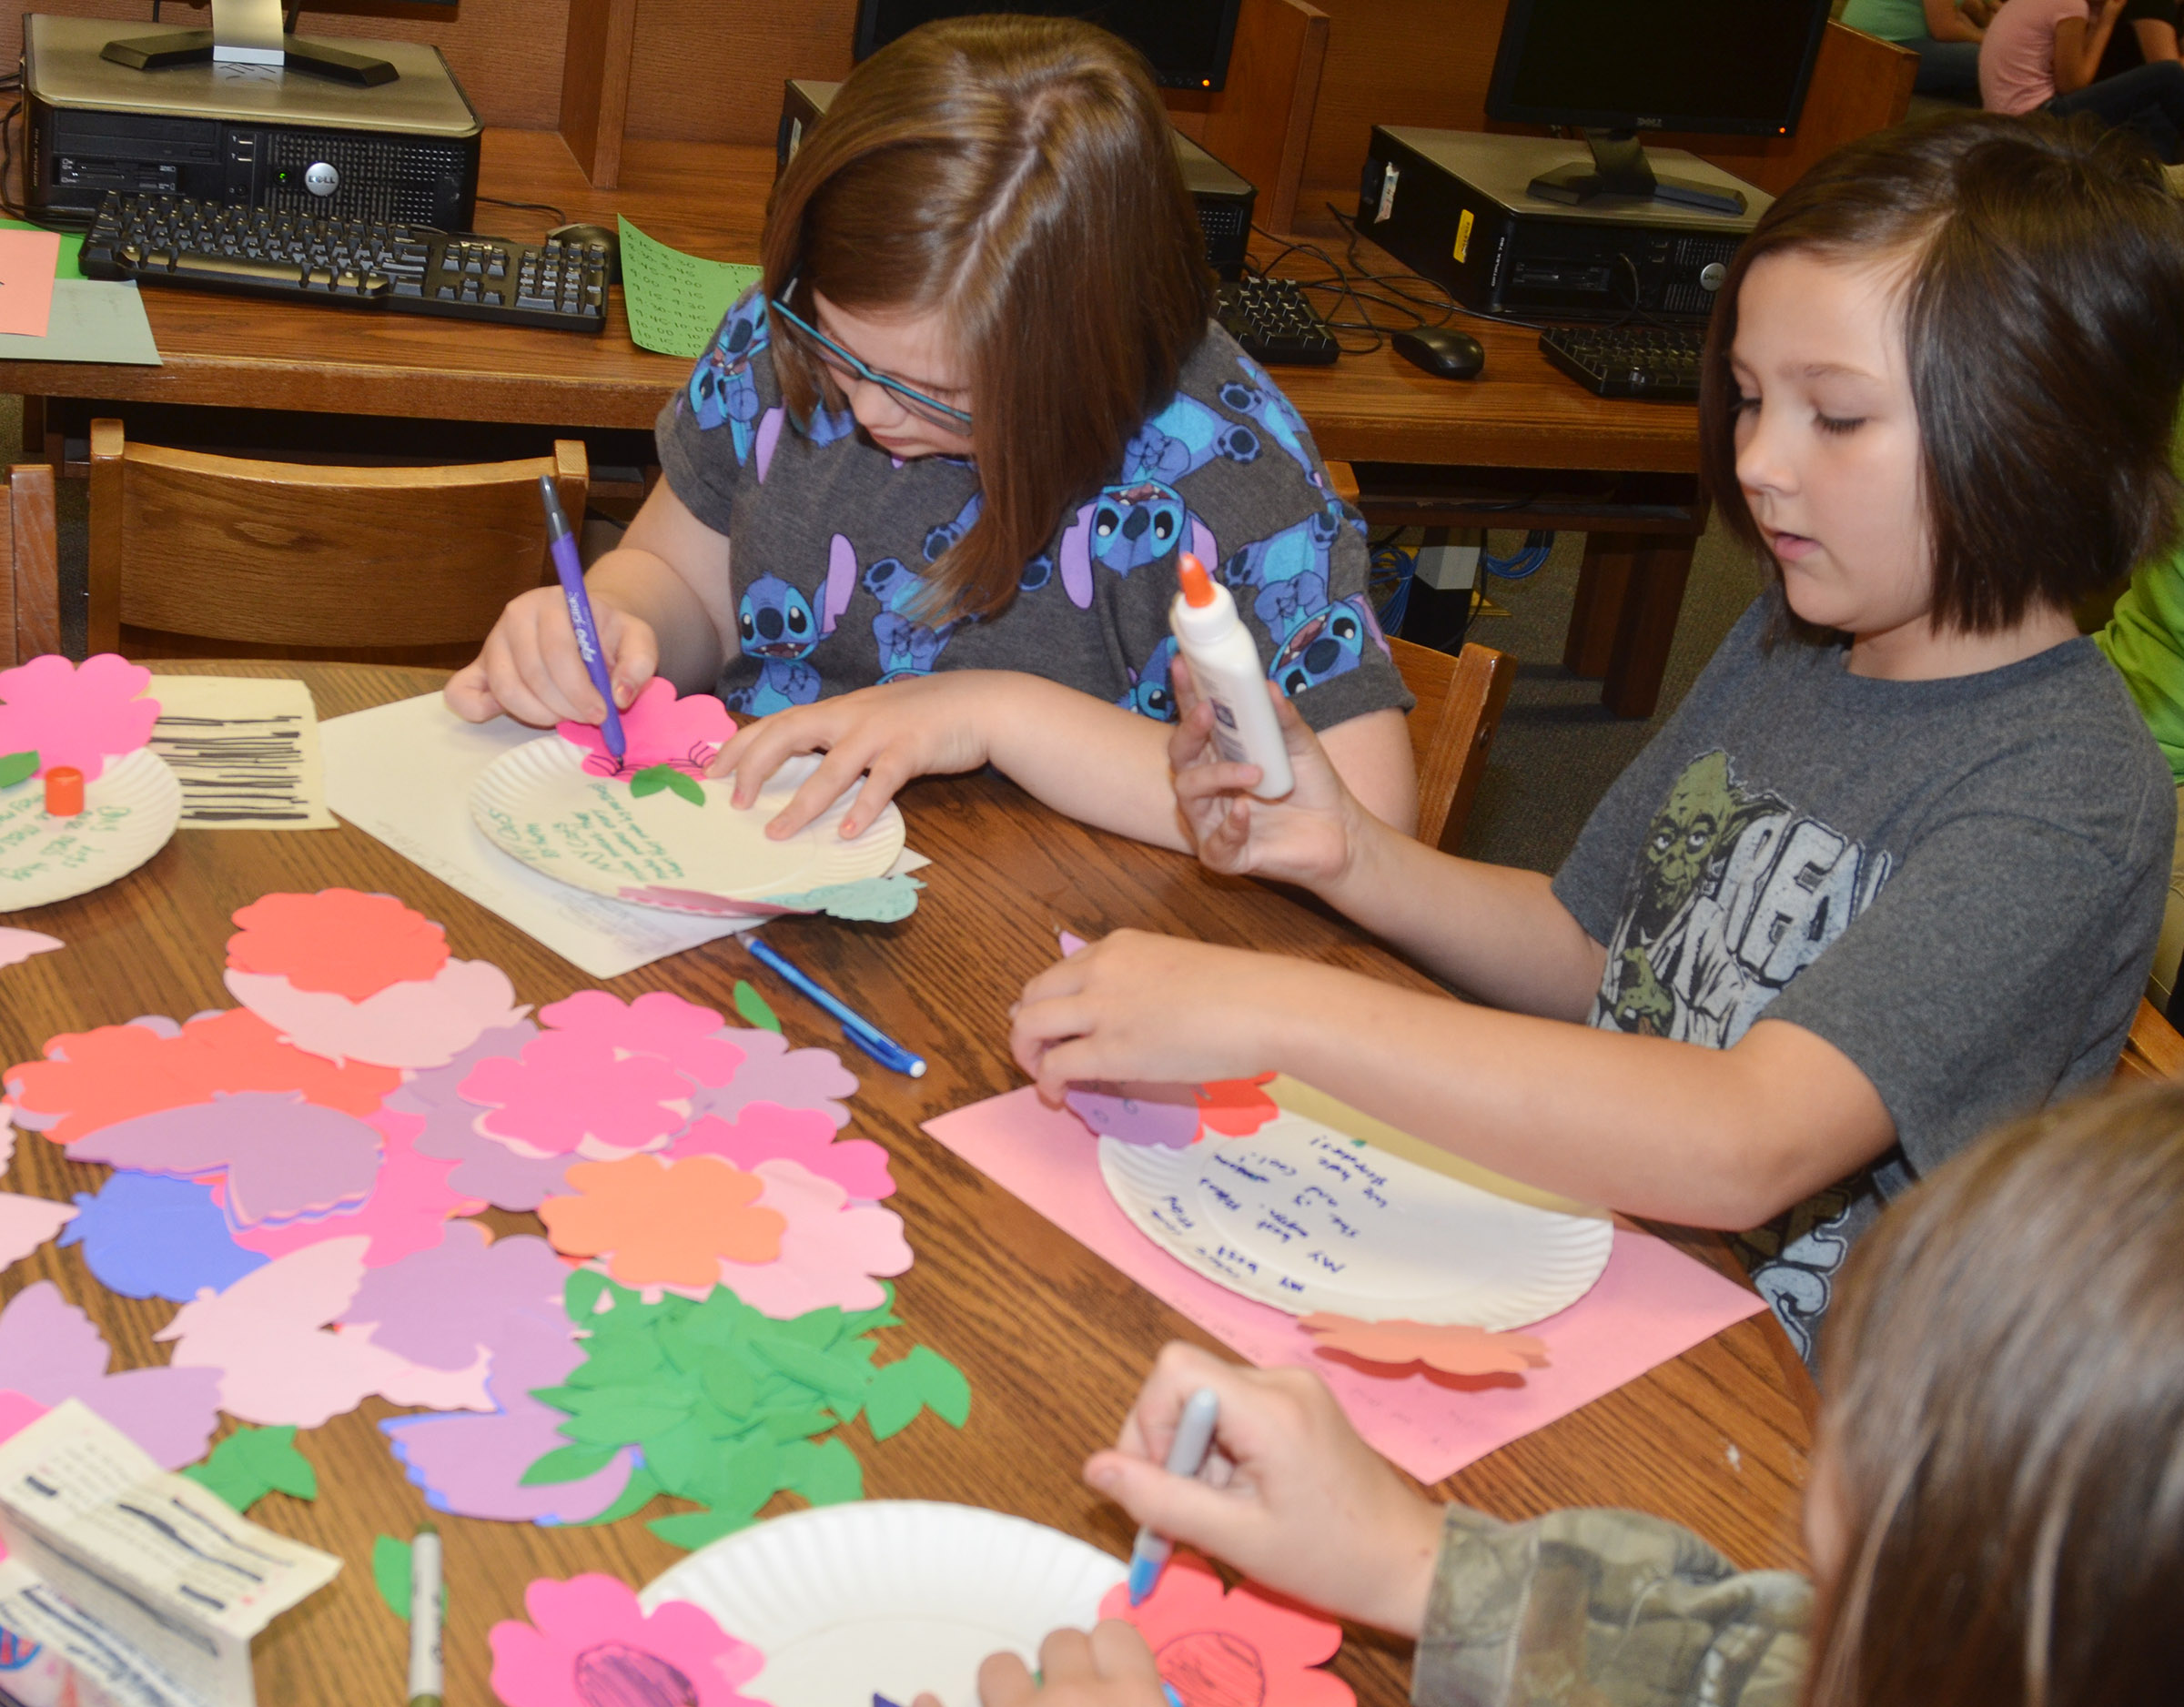 CMS fourth-graders Kaylyn Lawson, at left, and Cassie Crick decorate the paper plates on which they wrote their poems.